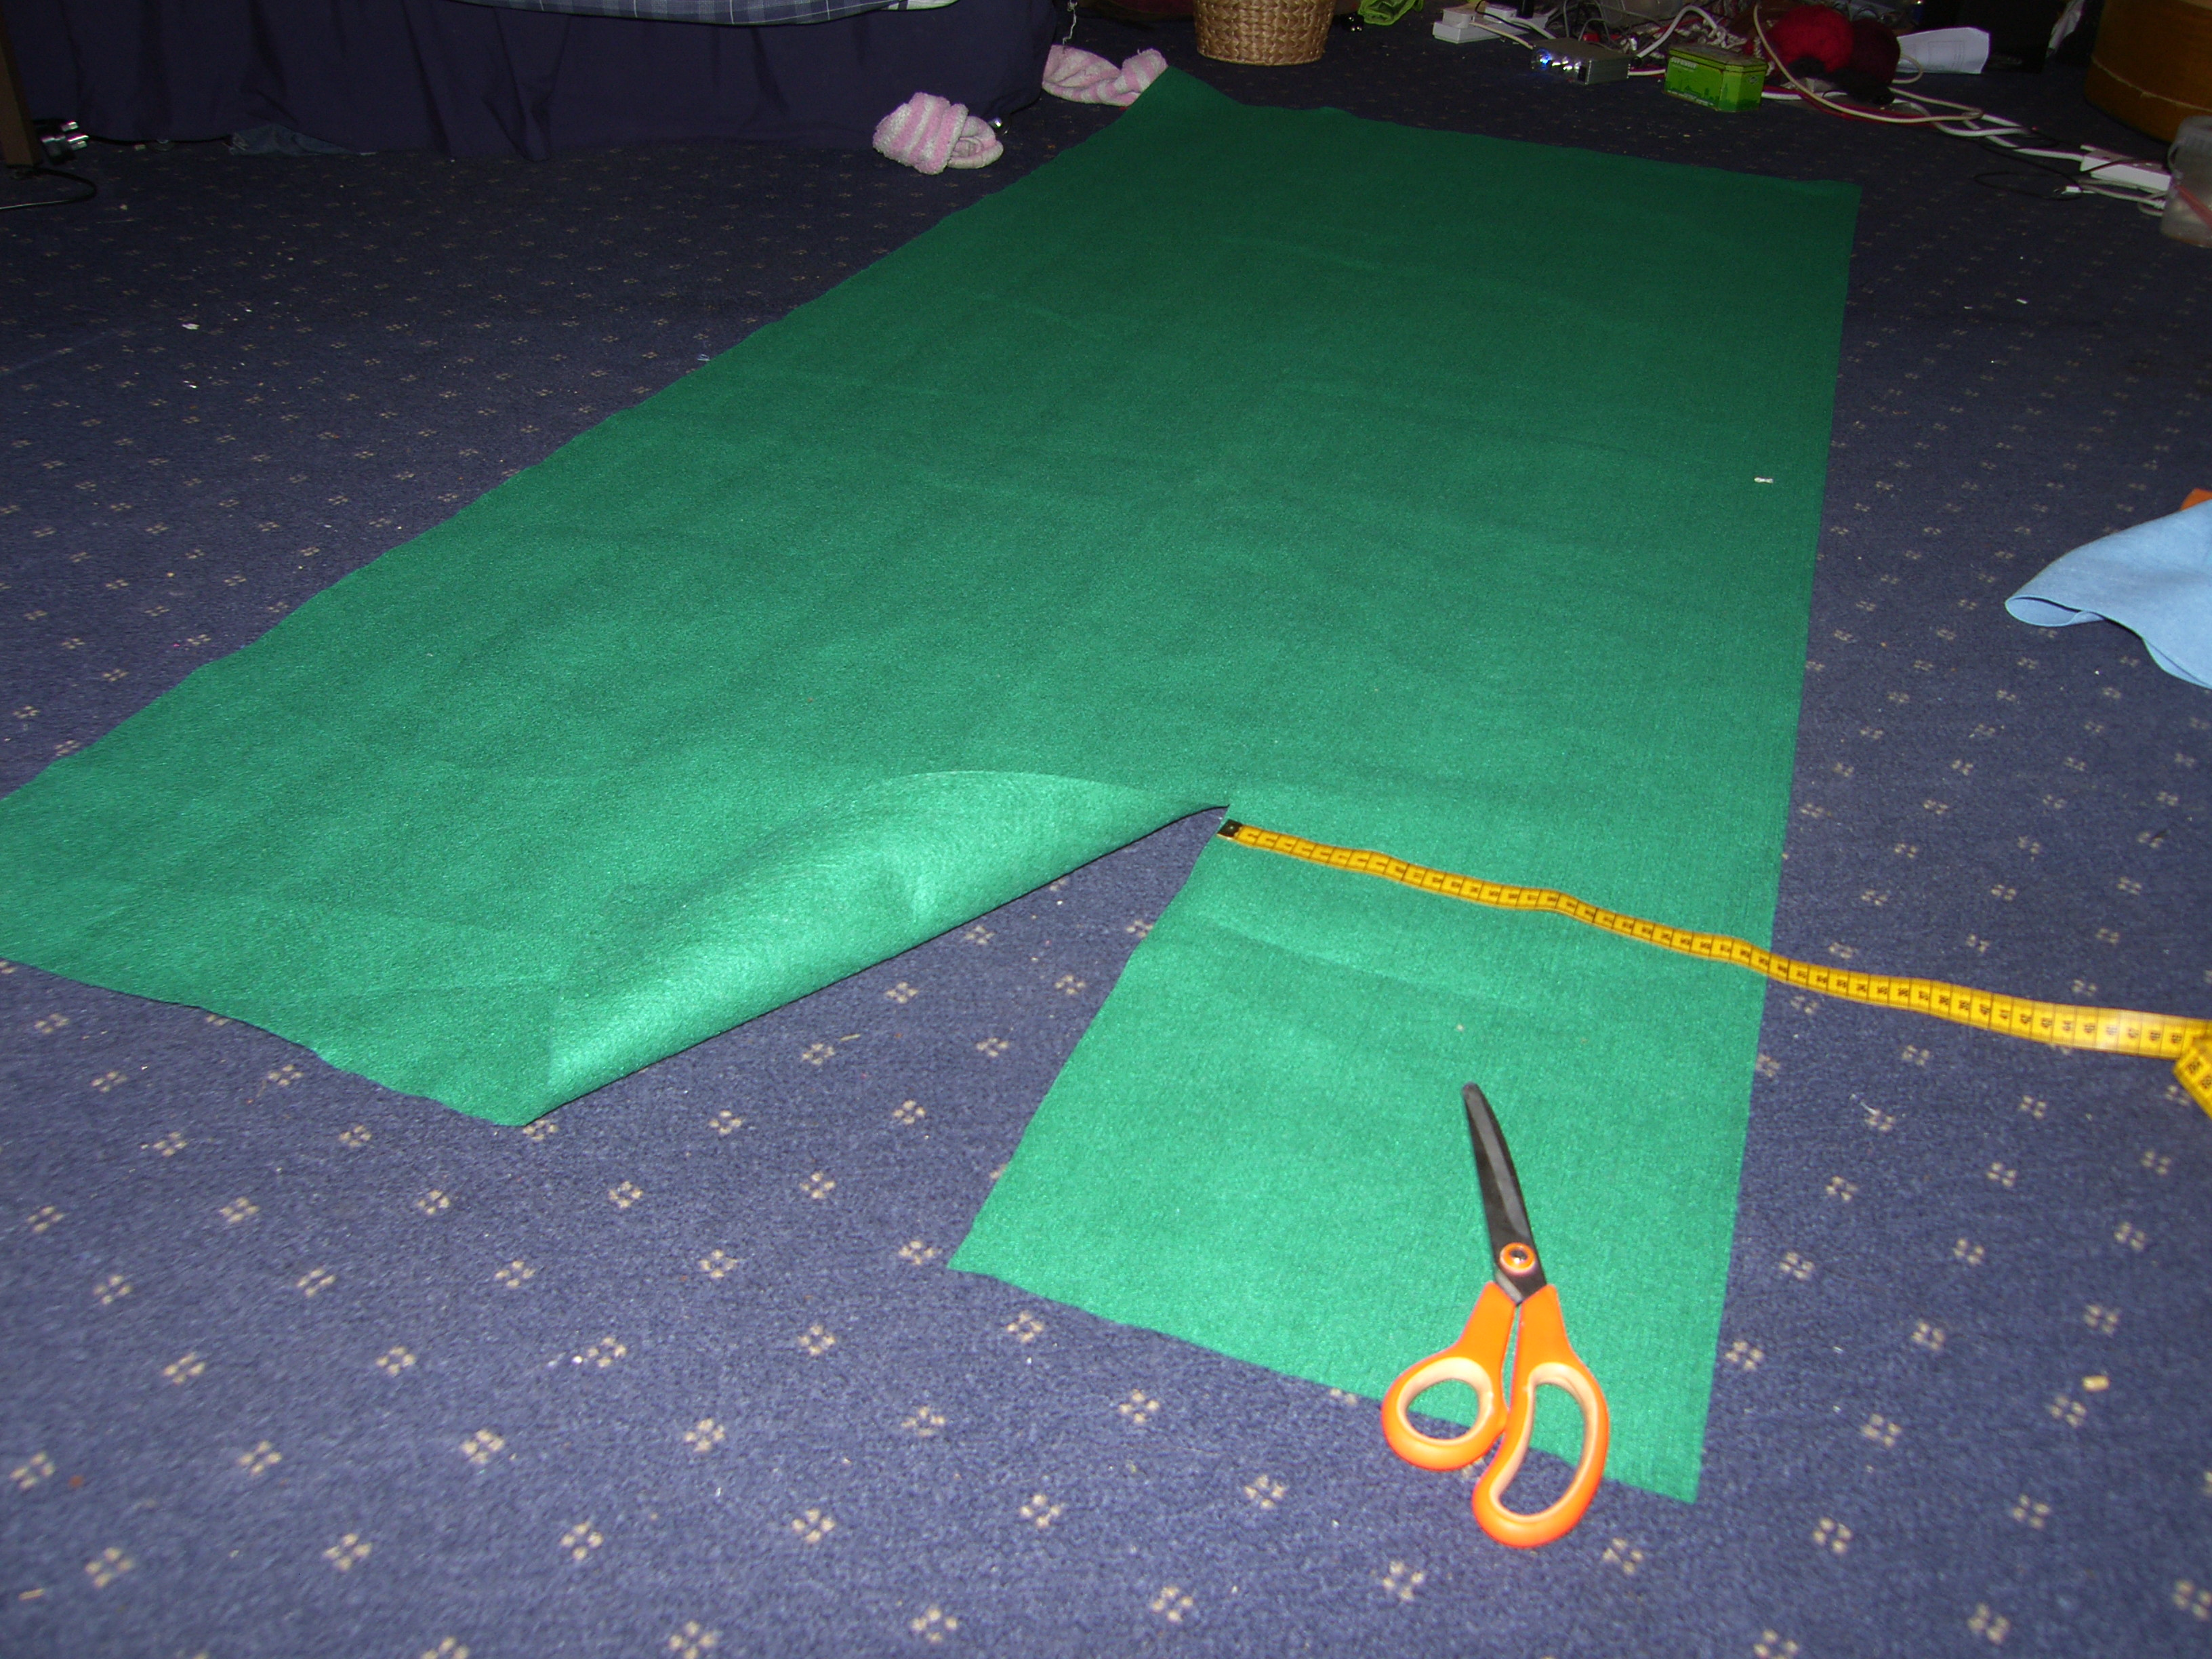 Picture of Cut Out Material and Padding